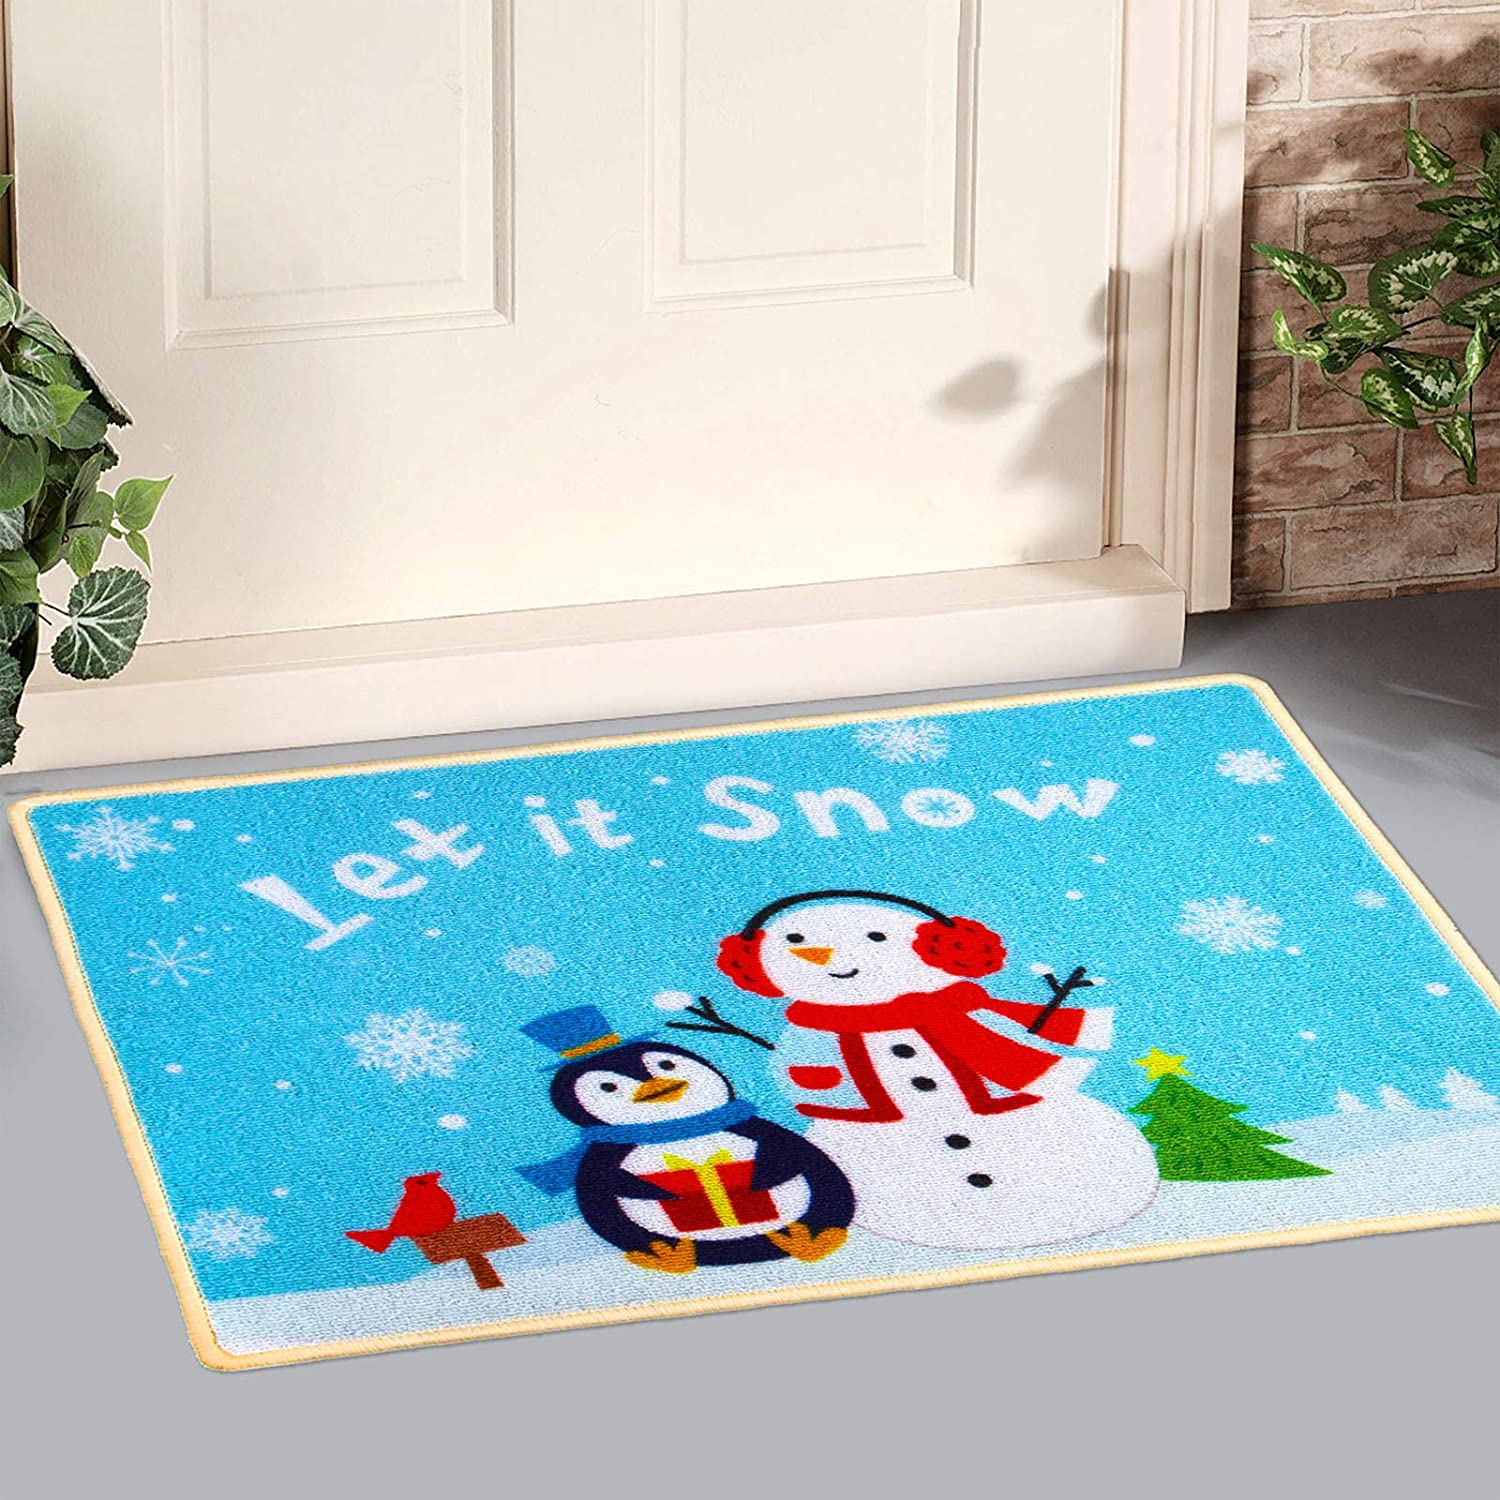 Uratot Winter Decorative Doormats Creative Snowman Holiday Welcome Floor Mats Let It Snow Anti Slip Rugs For Christmas Winter Home Decoration 20 X 28 Inches Garden Outdoor